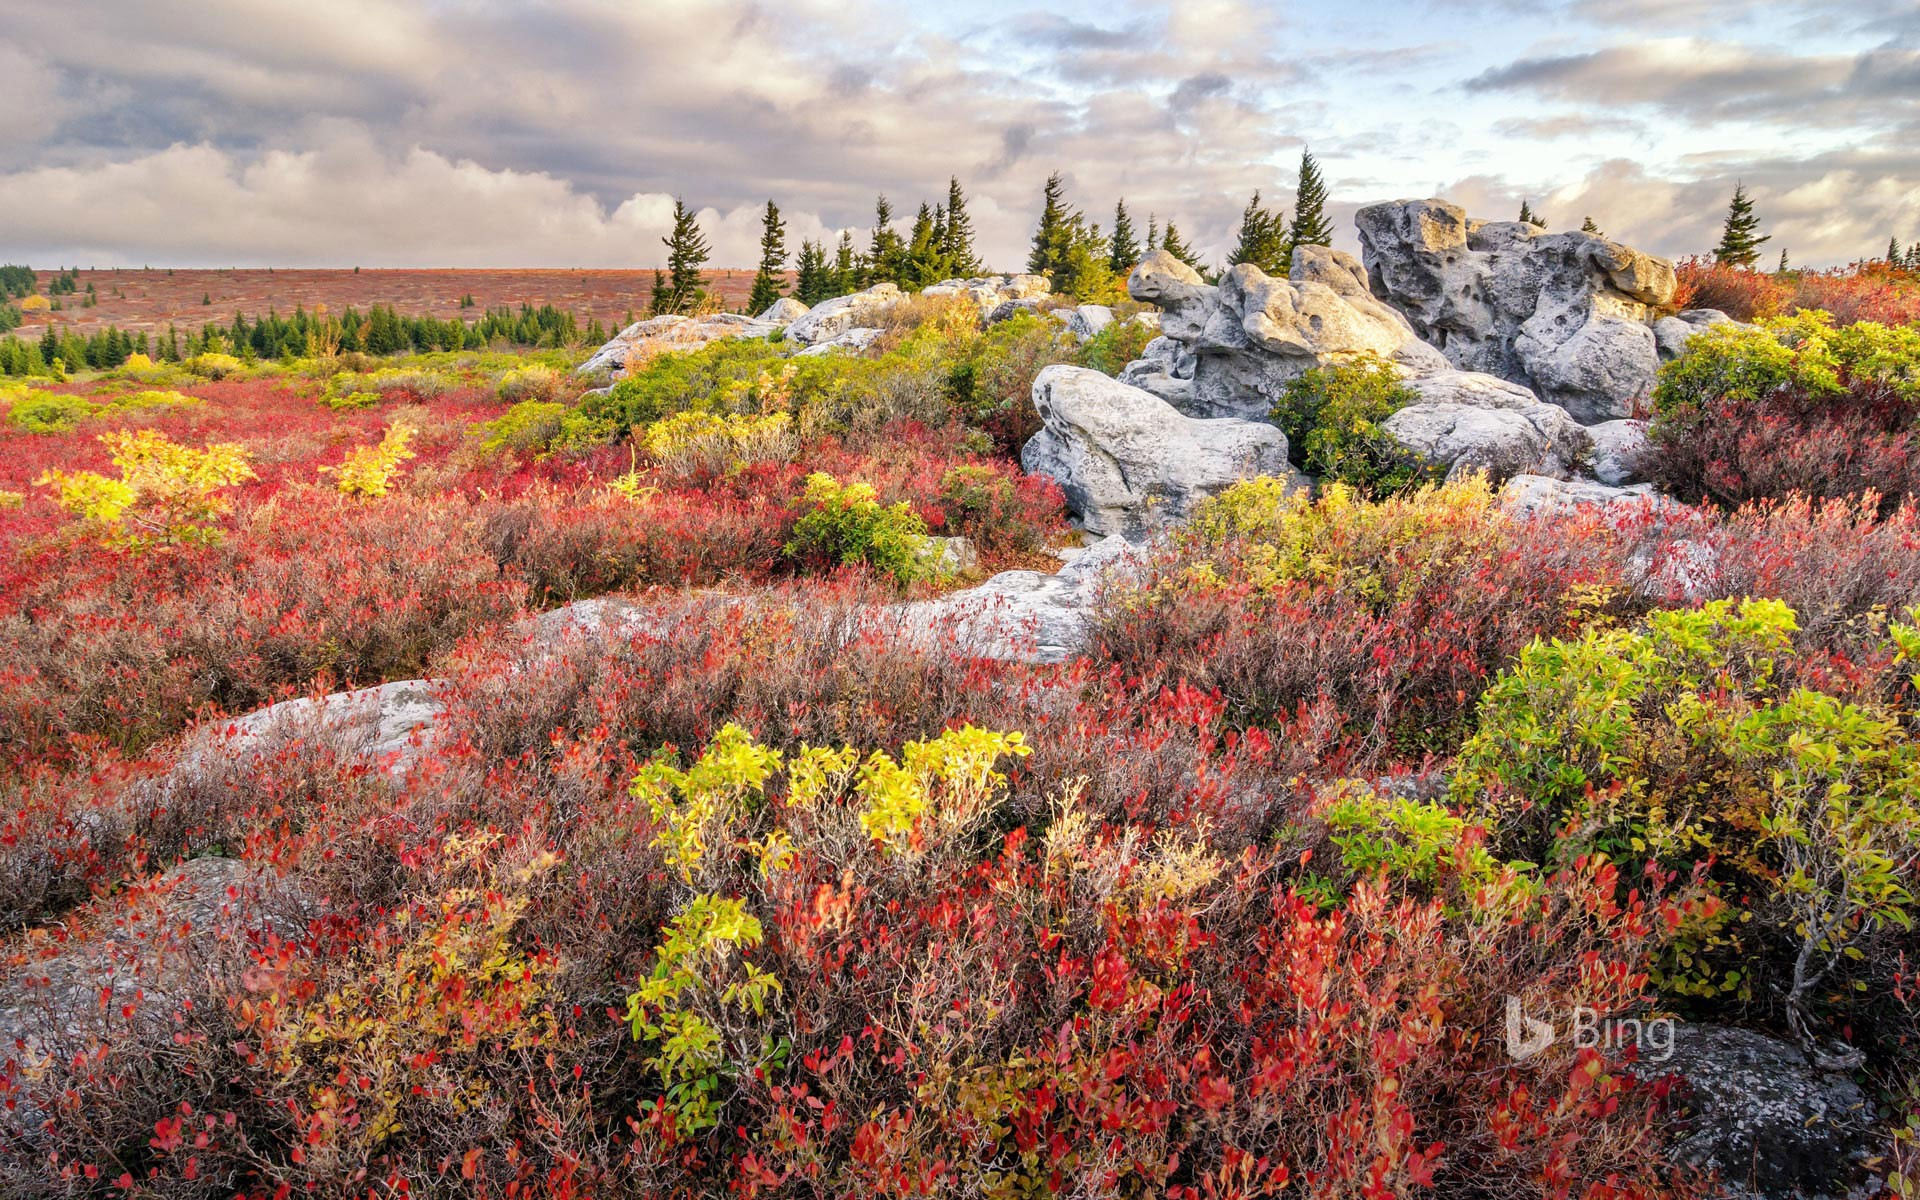 Bear Rocks Preserve in the Dolly Sods Wilderness, West Virginia, USA